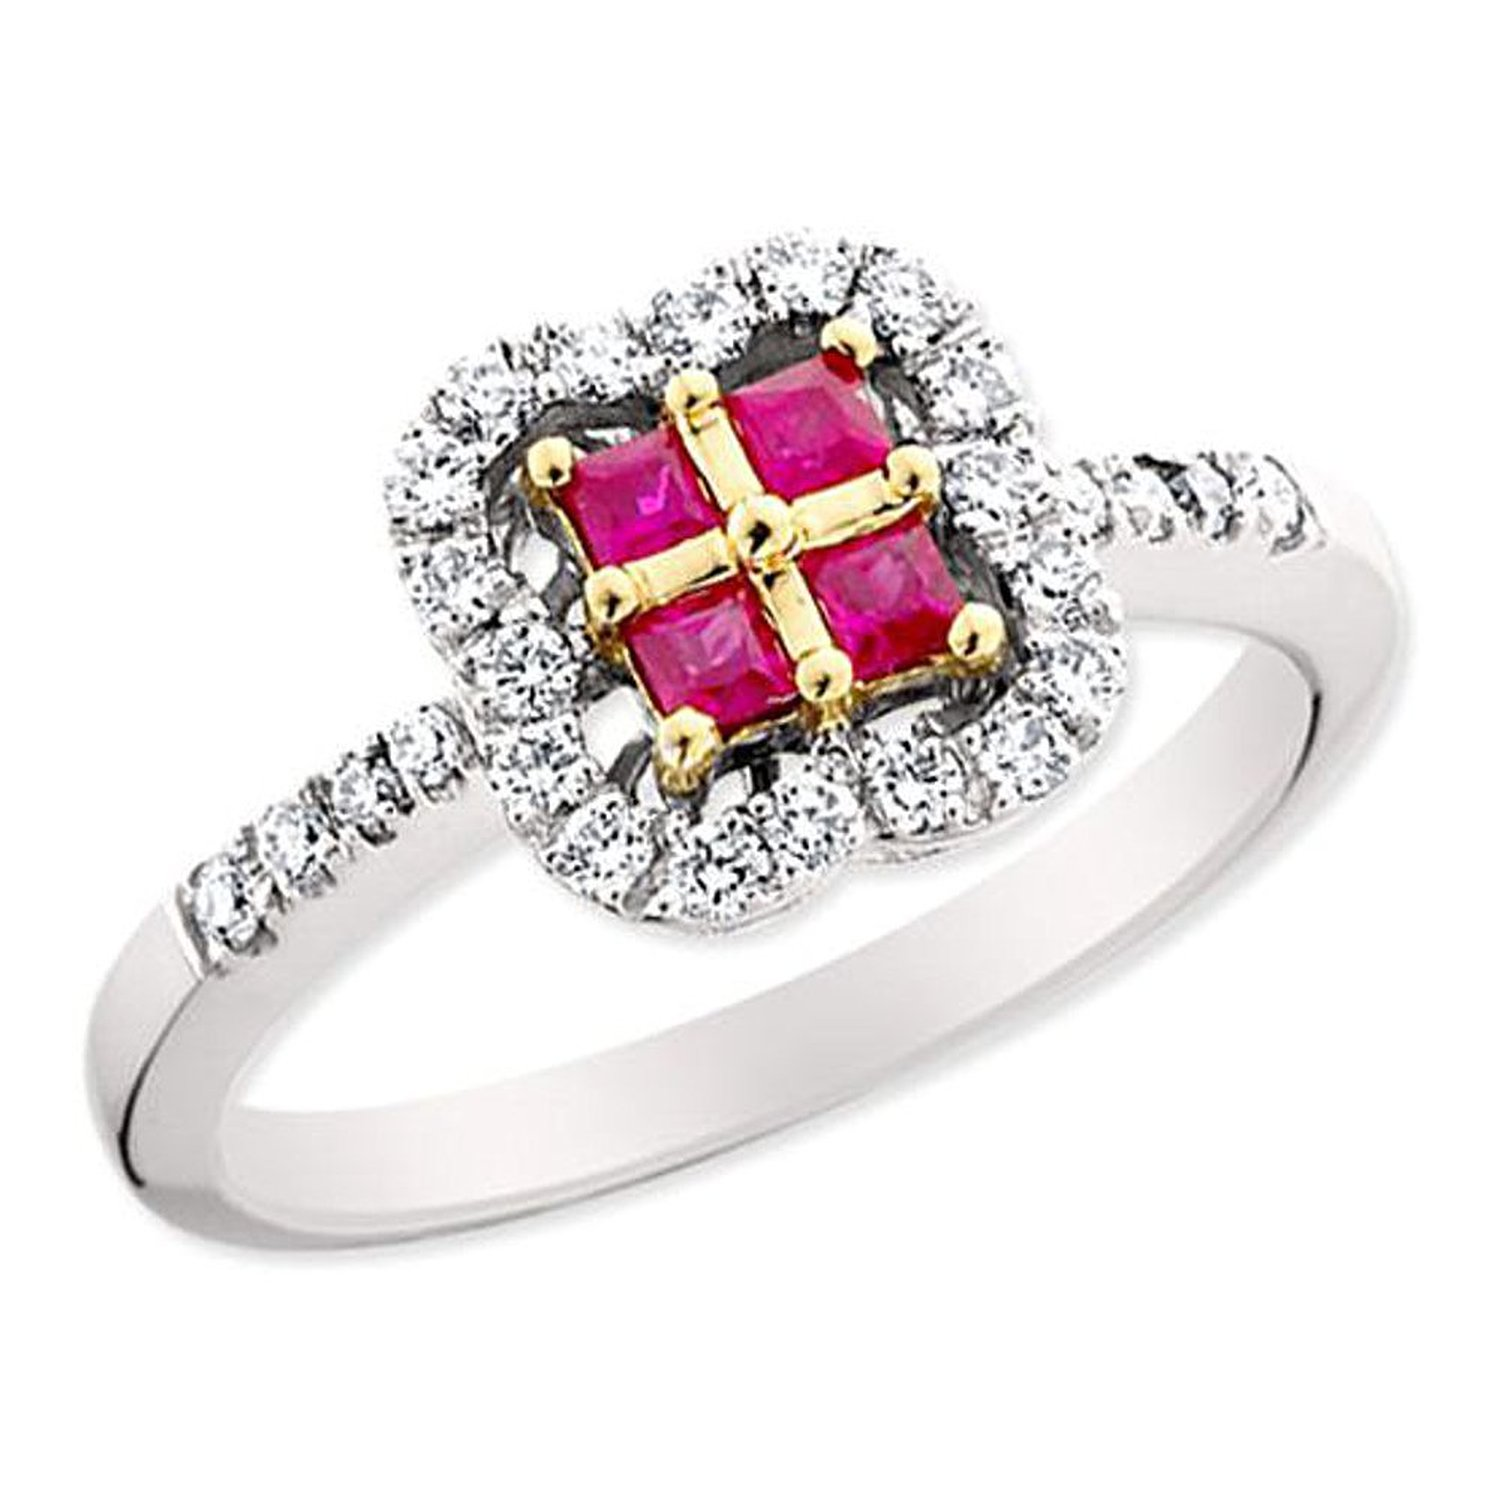 18kt Two-Tone Gold Ruby and Diamond Ring